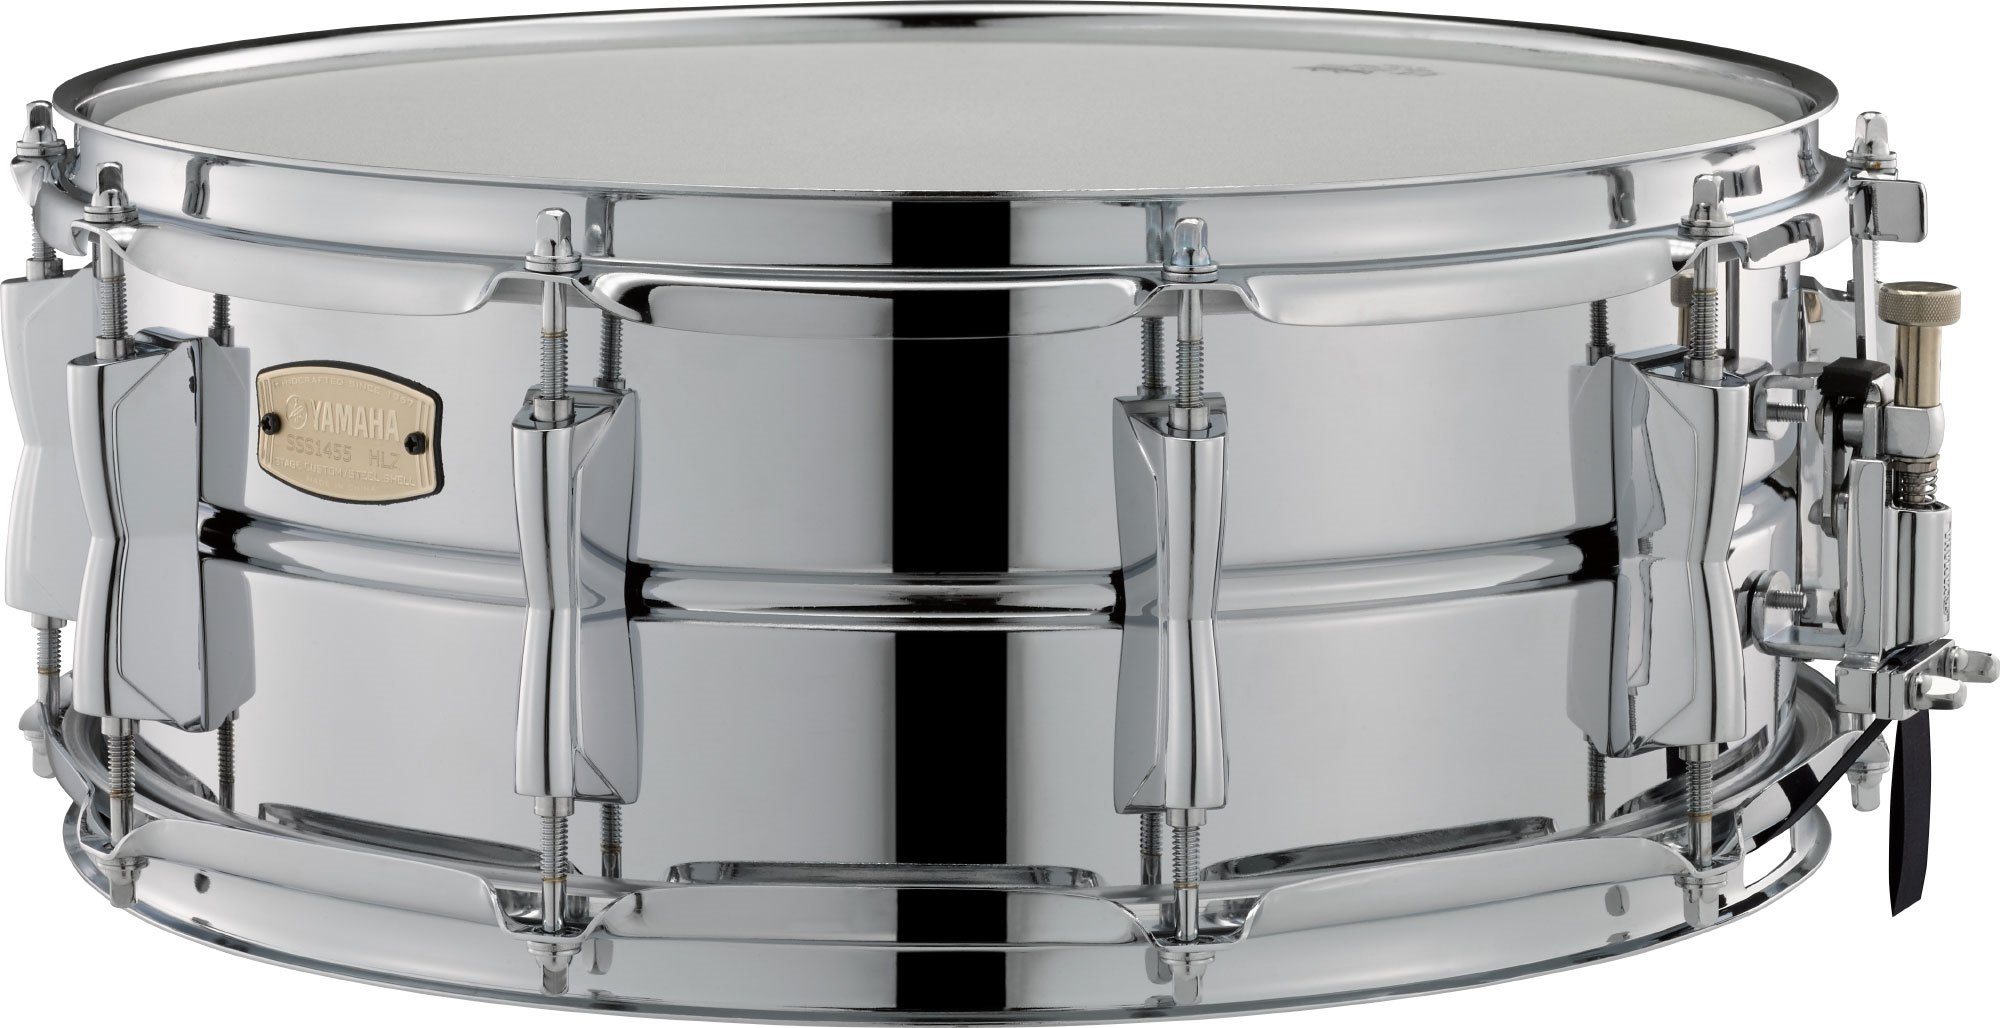 "Yamaha 14x5,5"" Stage Custom Steel lilletromme"